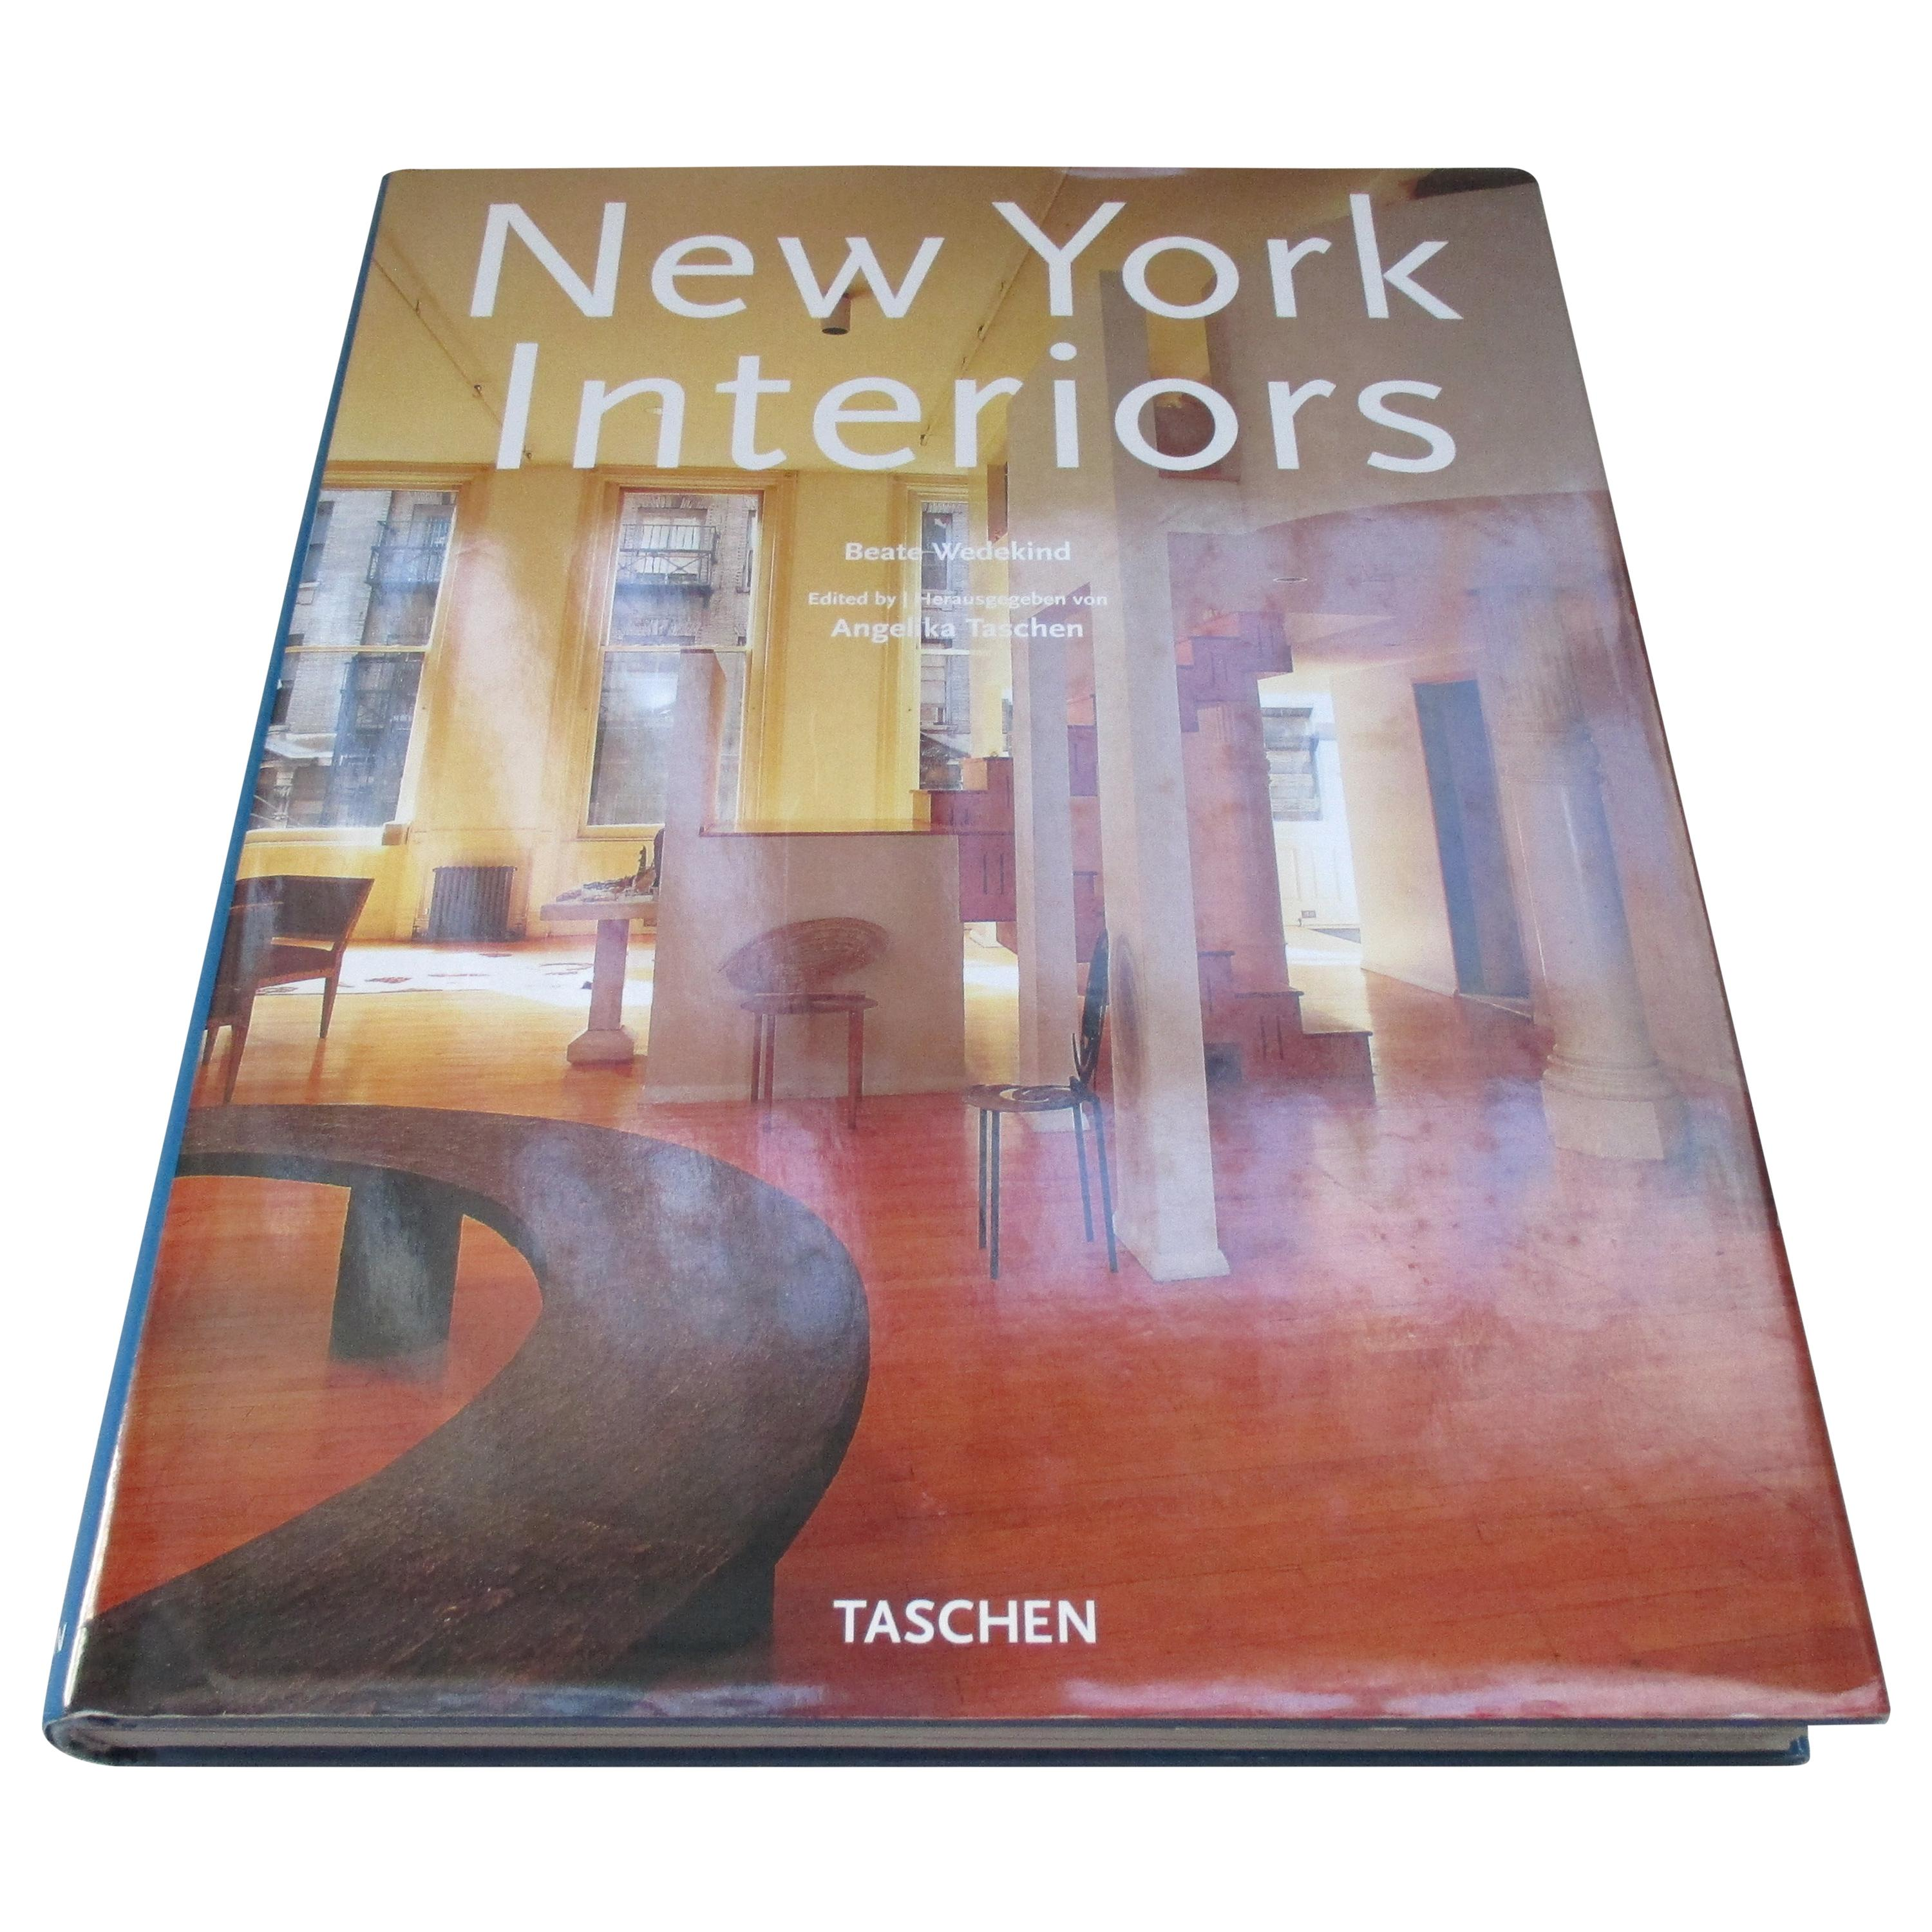 New York Interiors Hardcover Decorating Book by Taschen